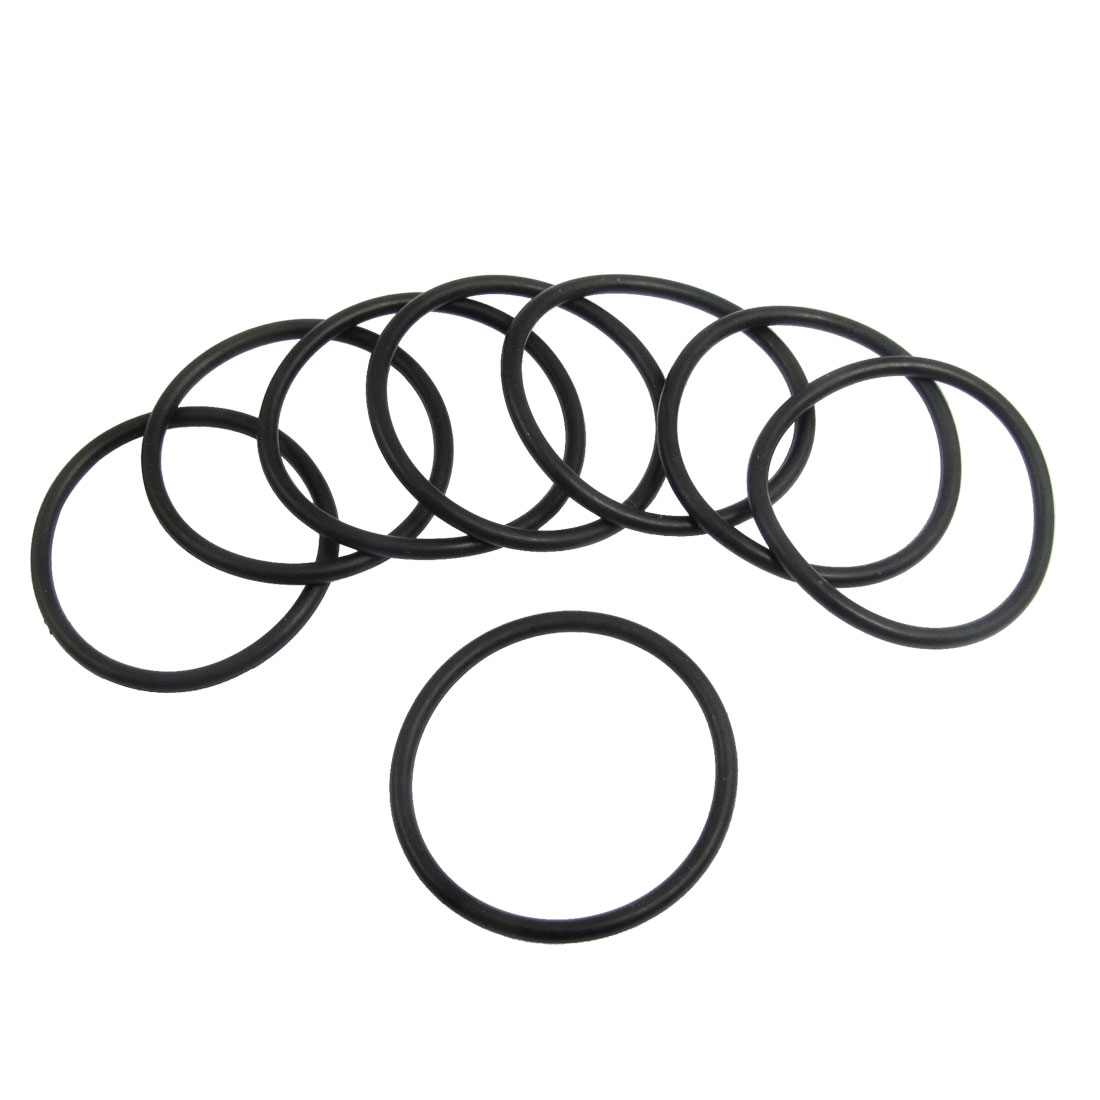 10 Pcs 35.5mm x 2.65mm Black Silicone O Rings Oil Seals Gaskets